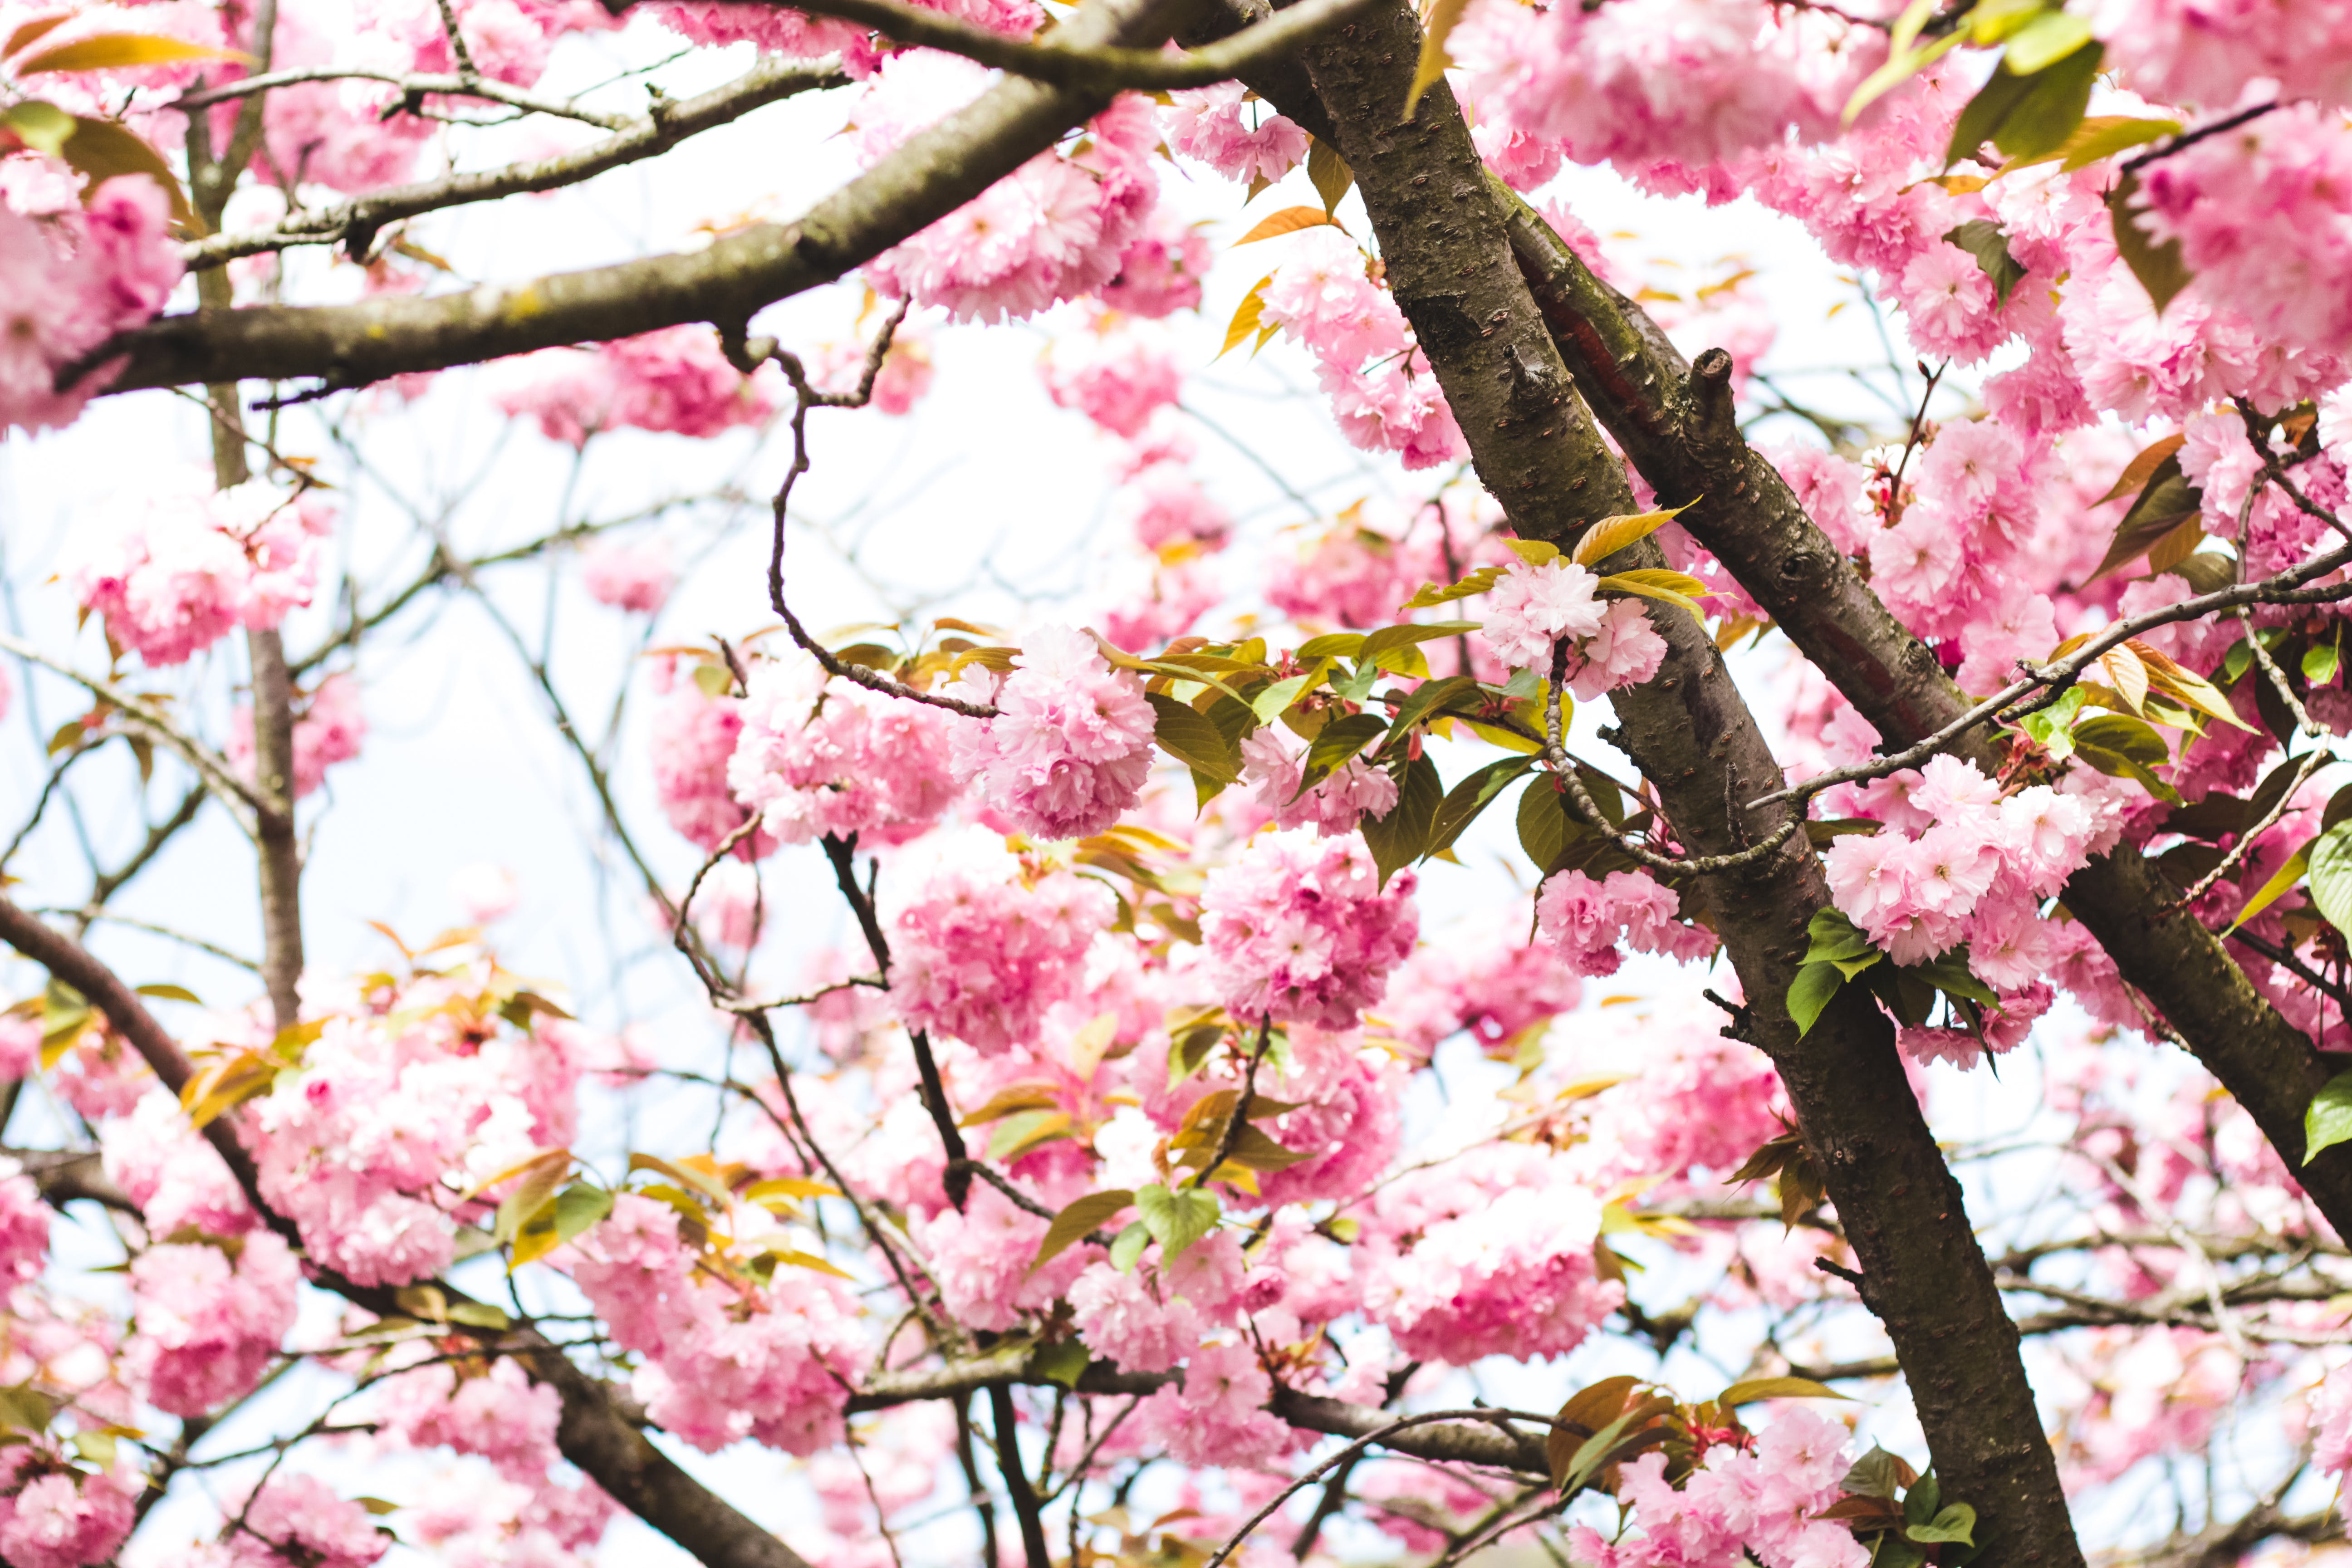 Photography of Pink Flowers on Tree